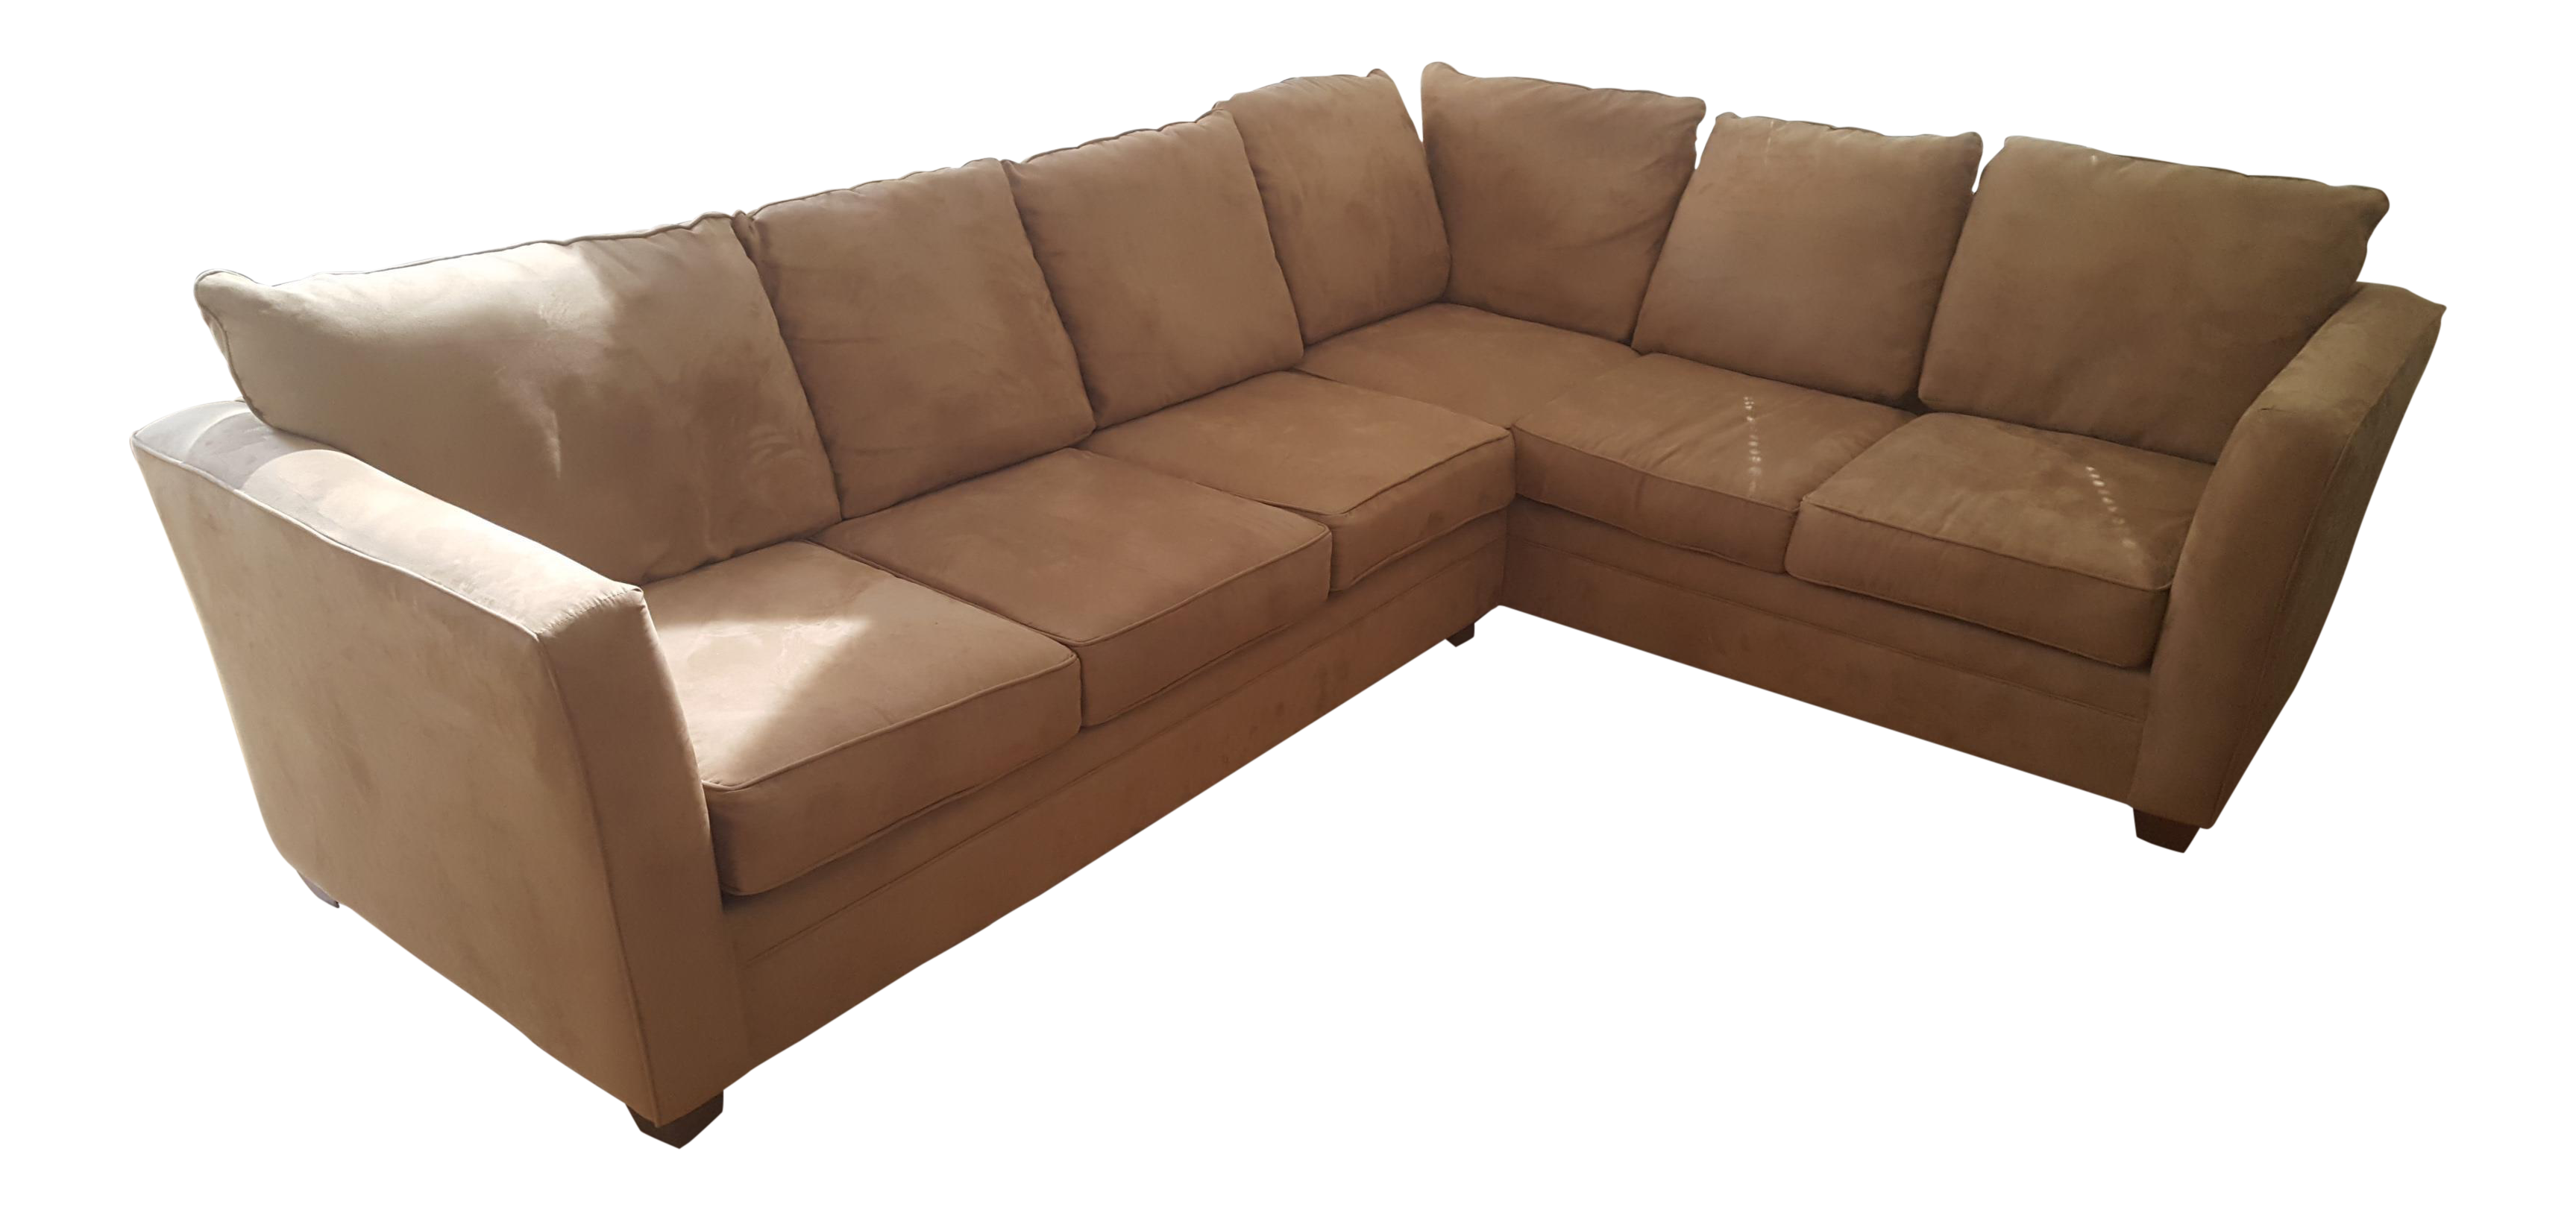 Favorite Macy's L-Shaped Suede Sectional Sofa | Chairish TO25